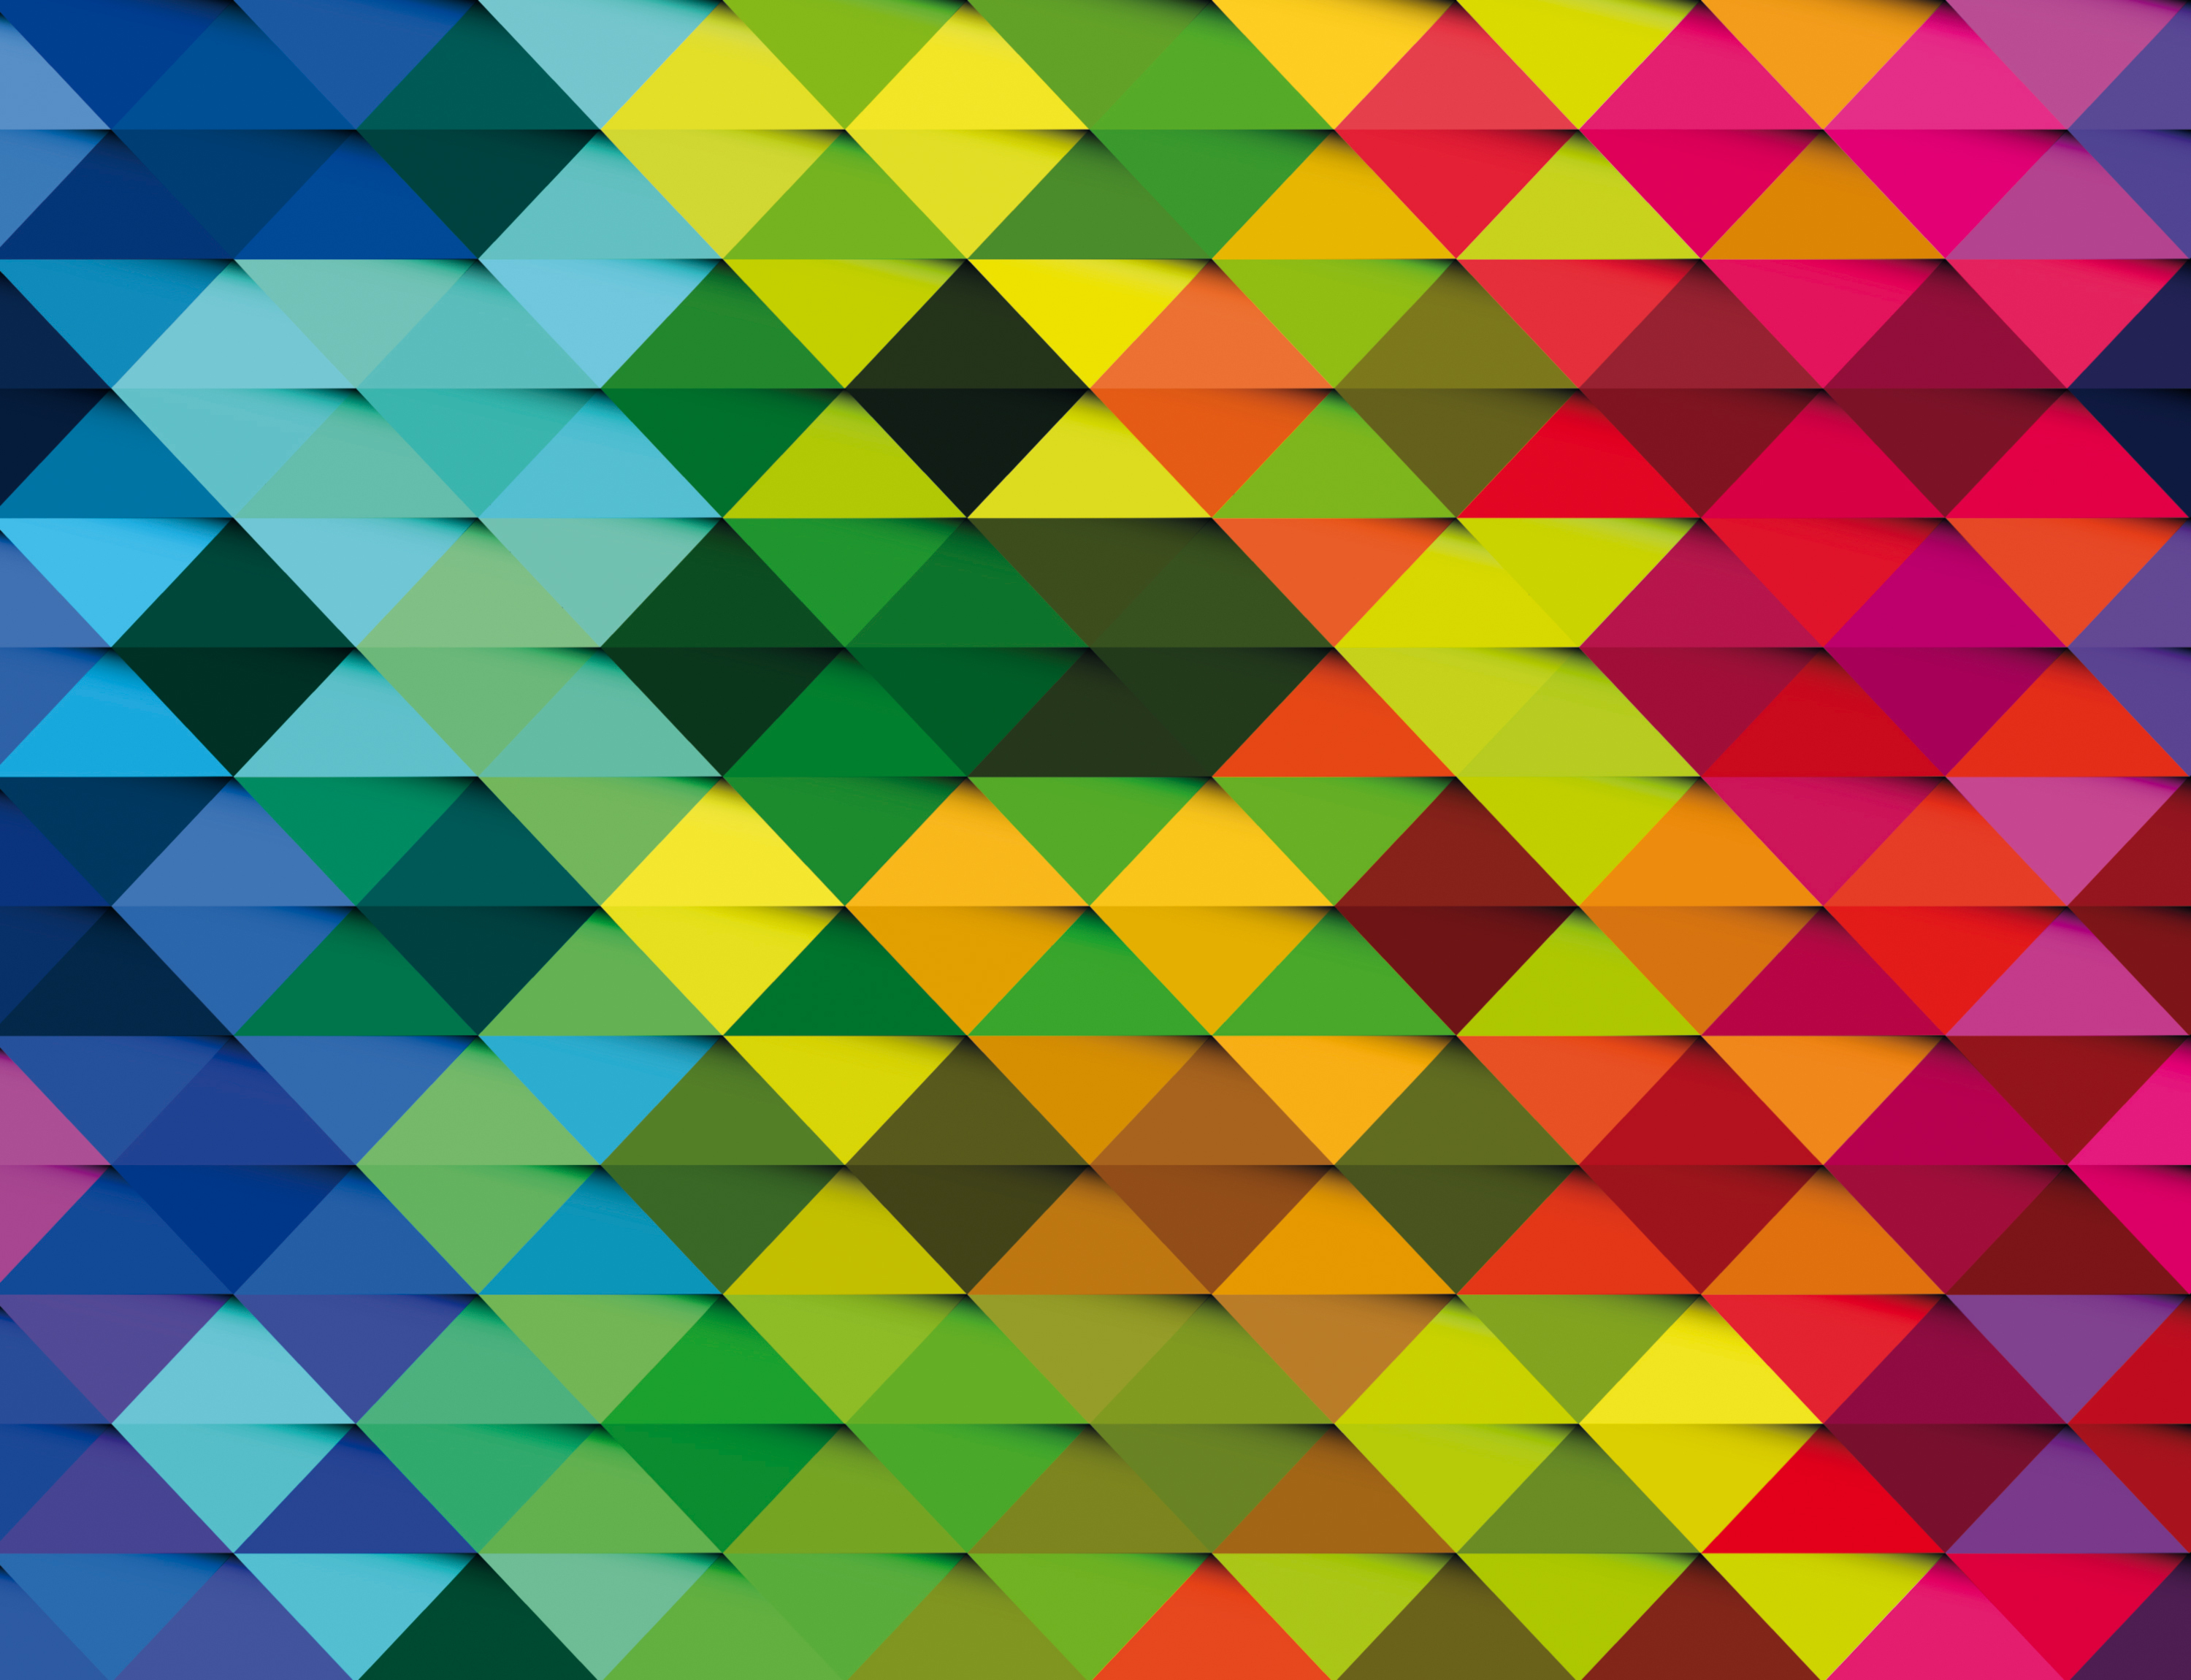 Pics photos 3d colorful abstract background design - Colorful Abstract Background Design Template Modern